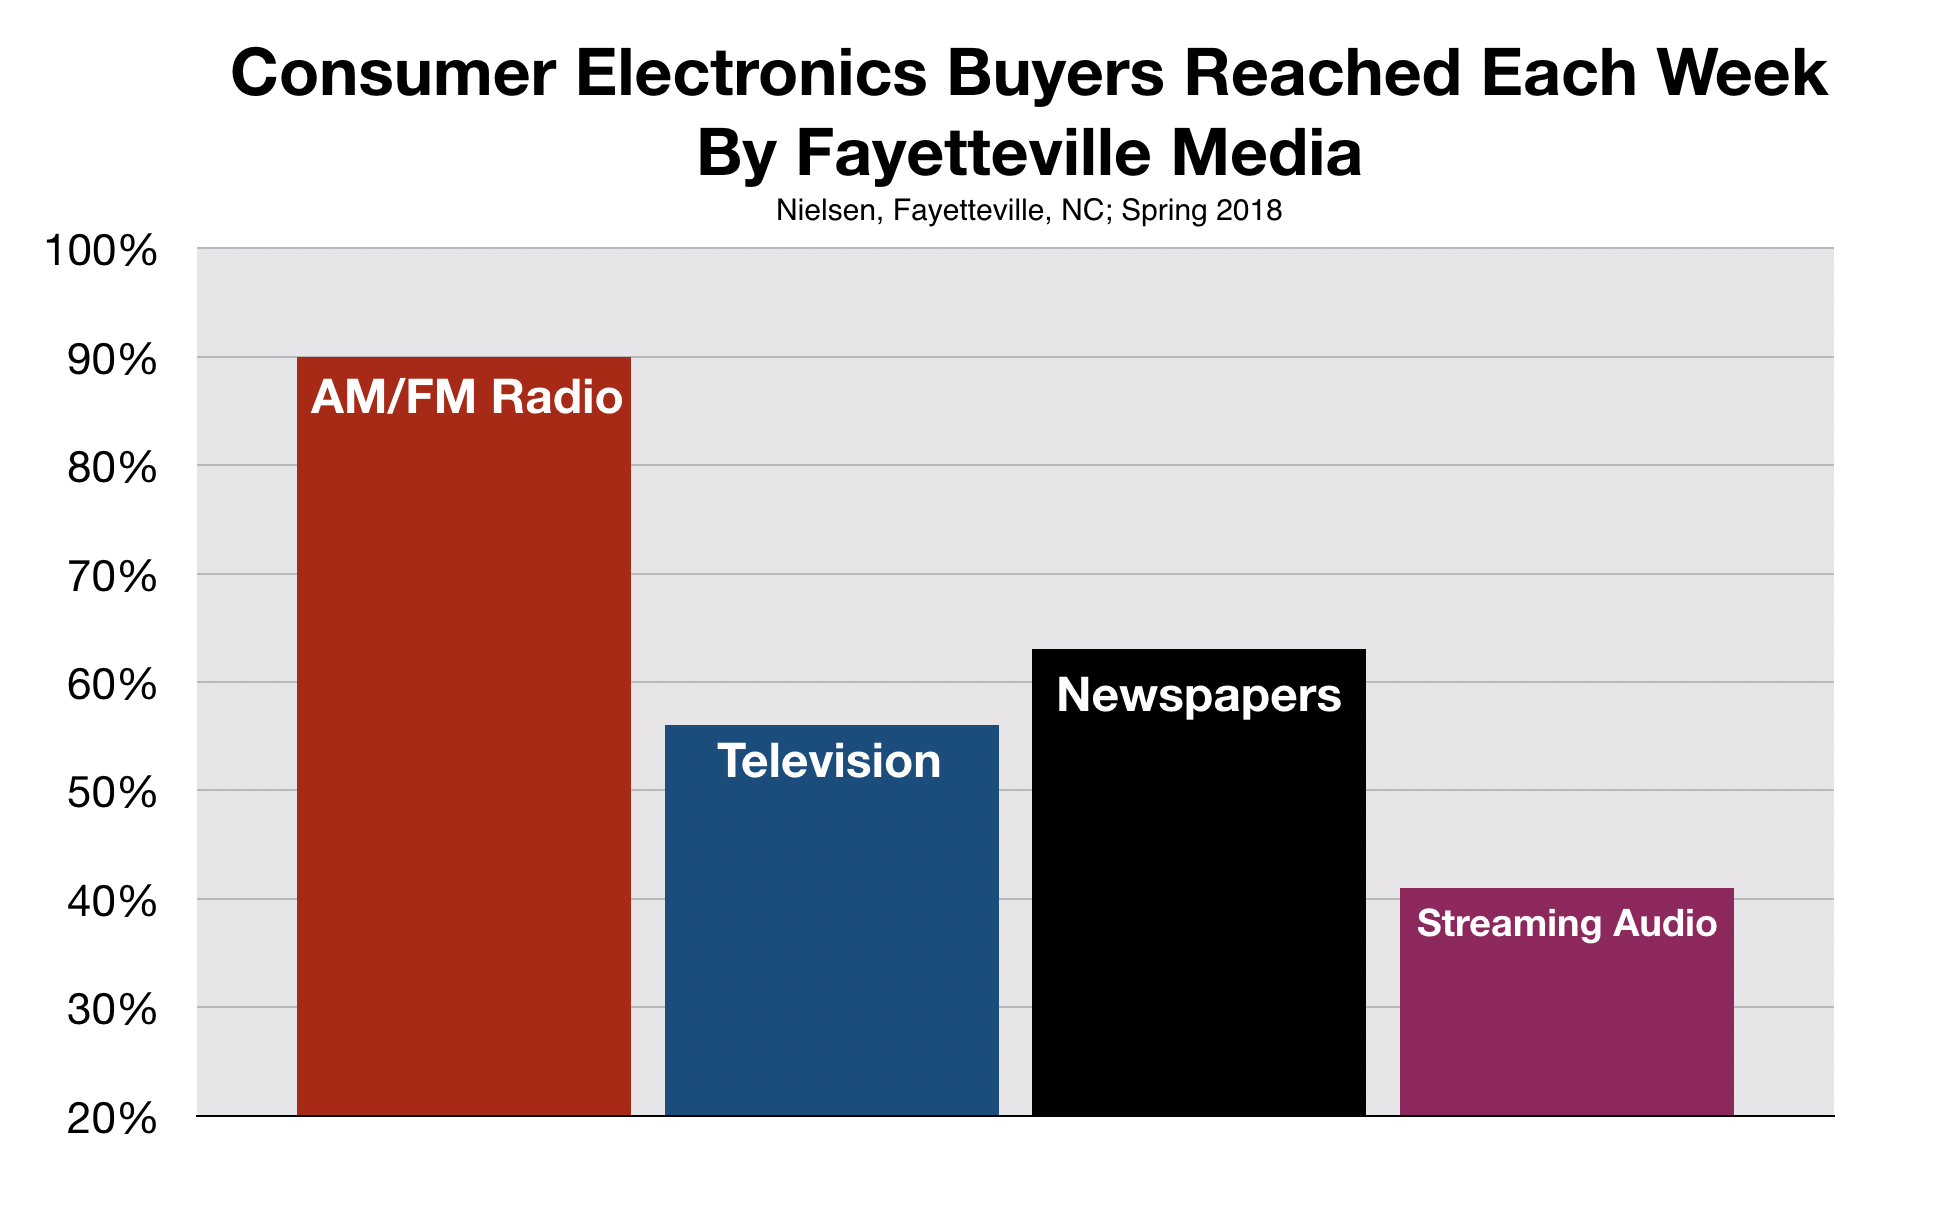 Consumer Electronic Buyers in Fayetteville